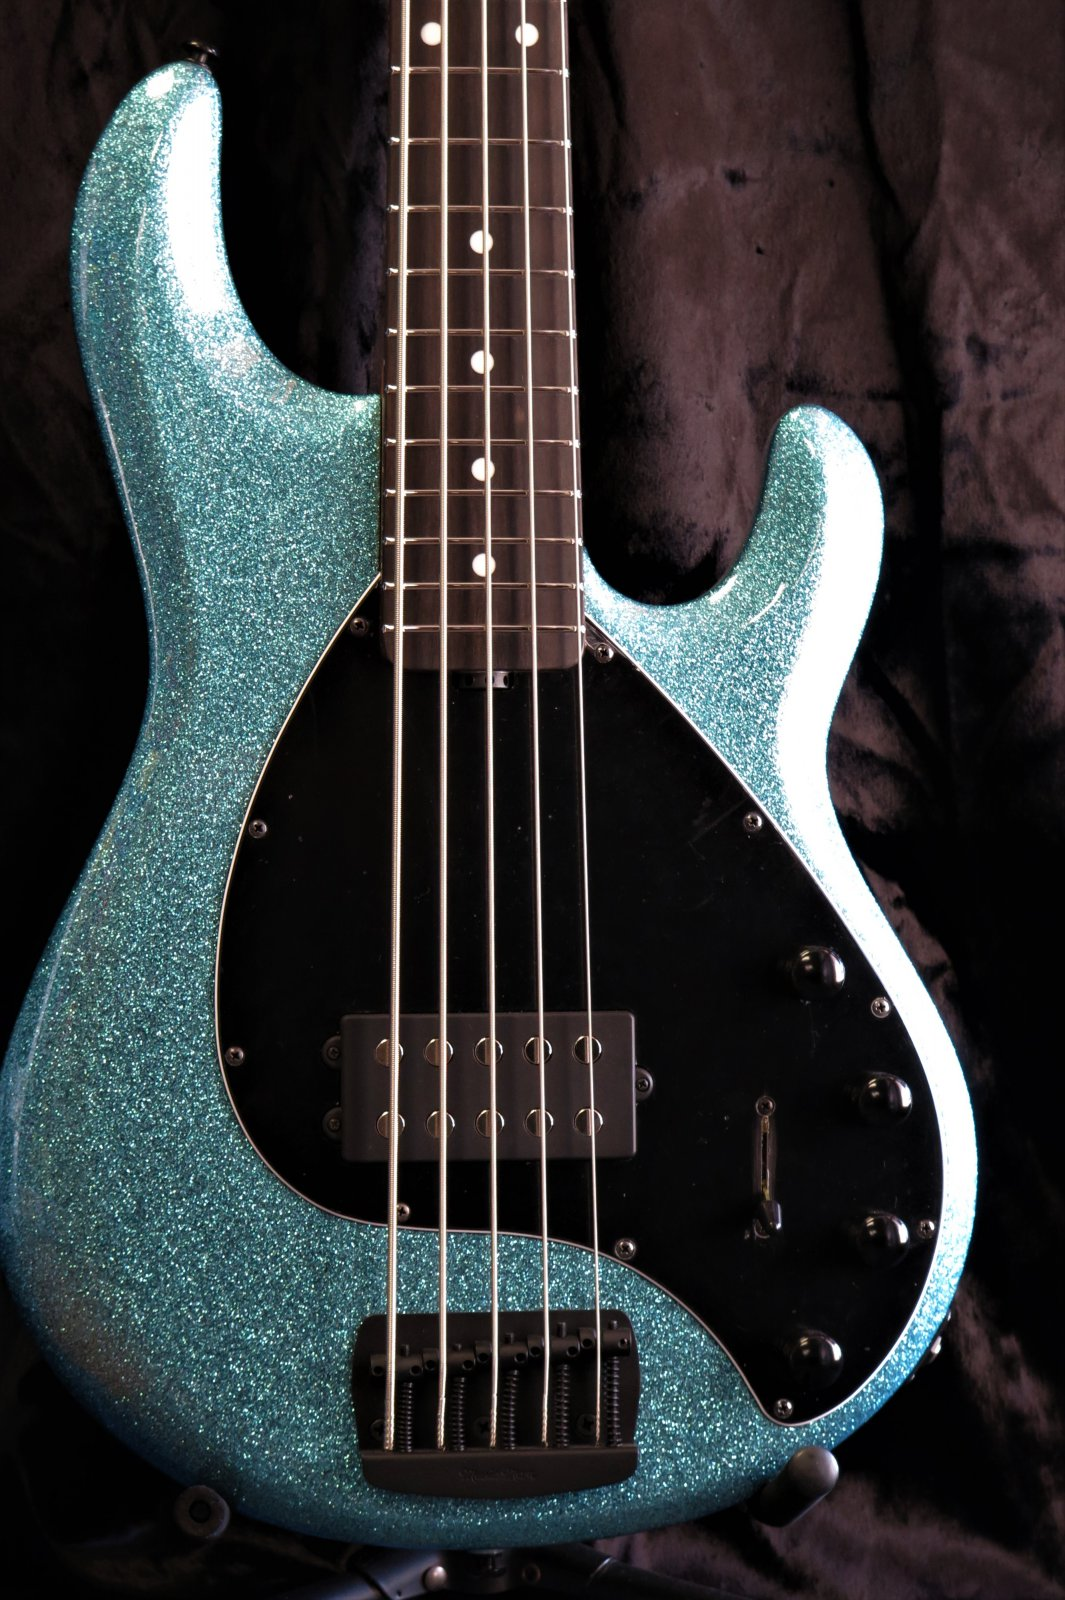 Ernie Ball Music Man StingRay Special 5H - Aqua Sparkle